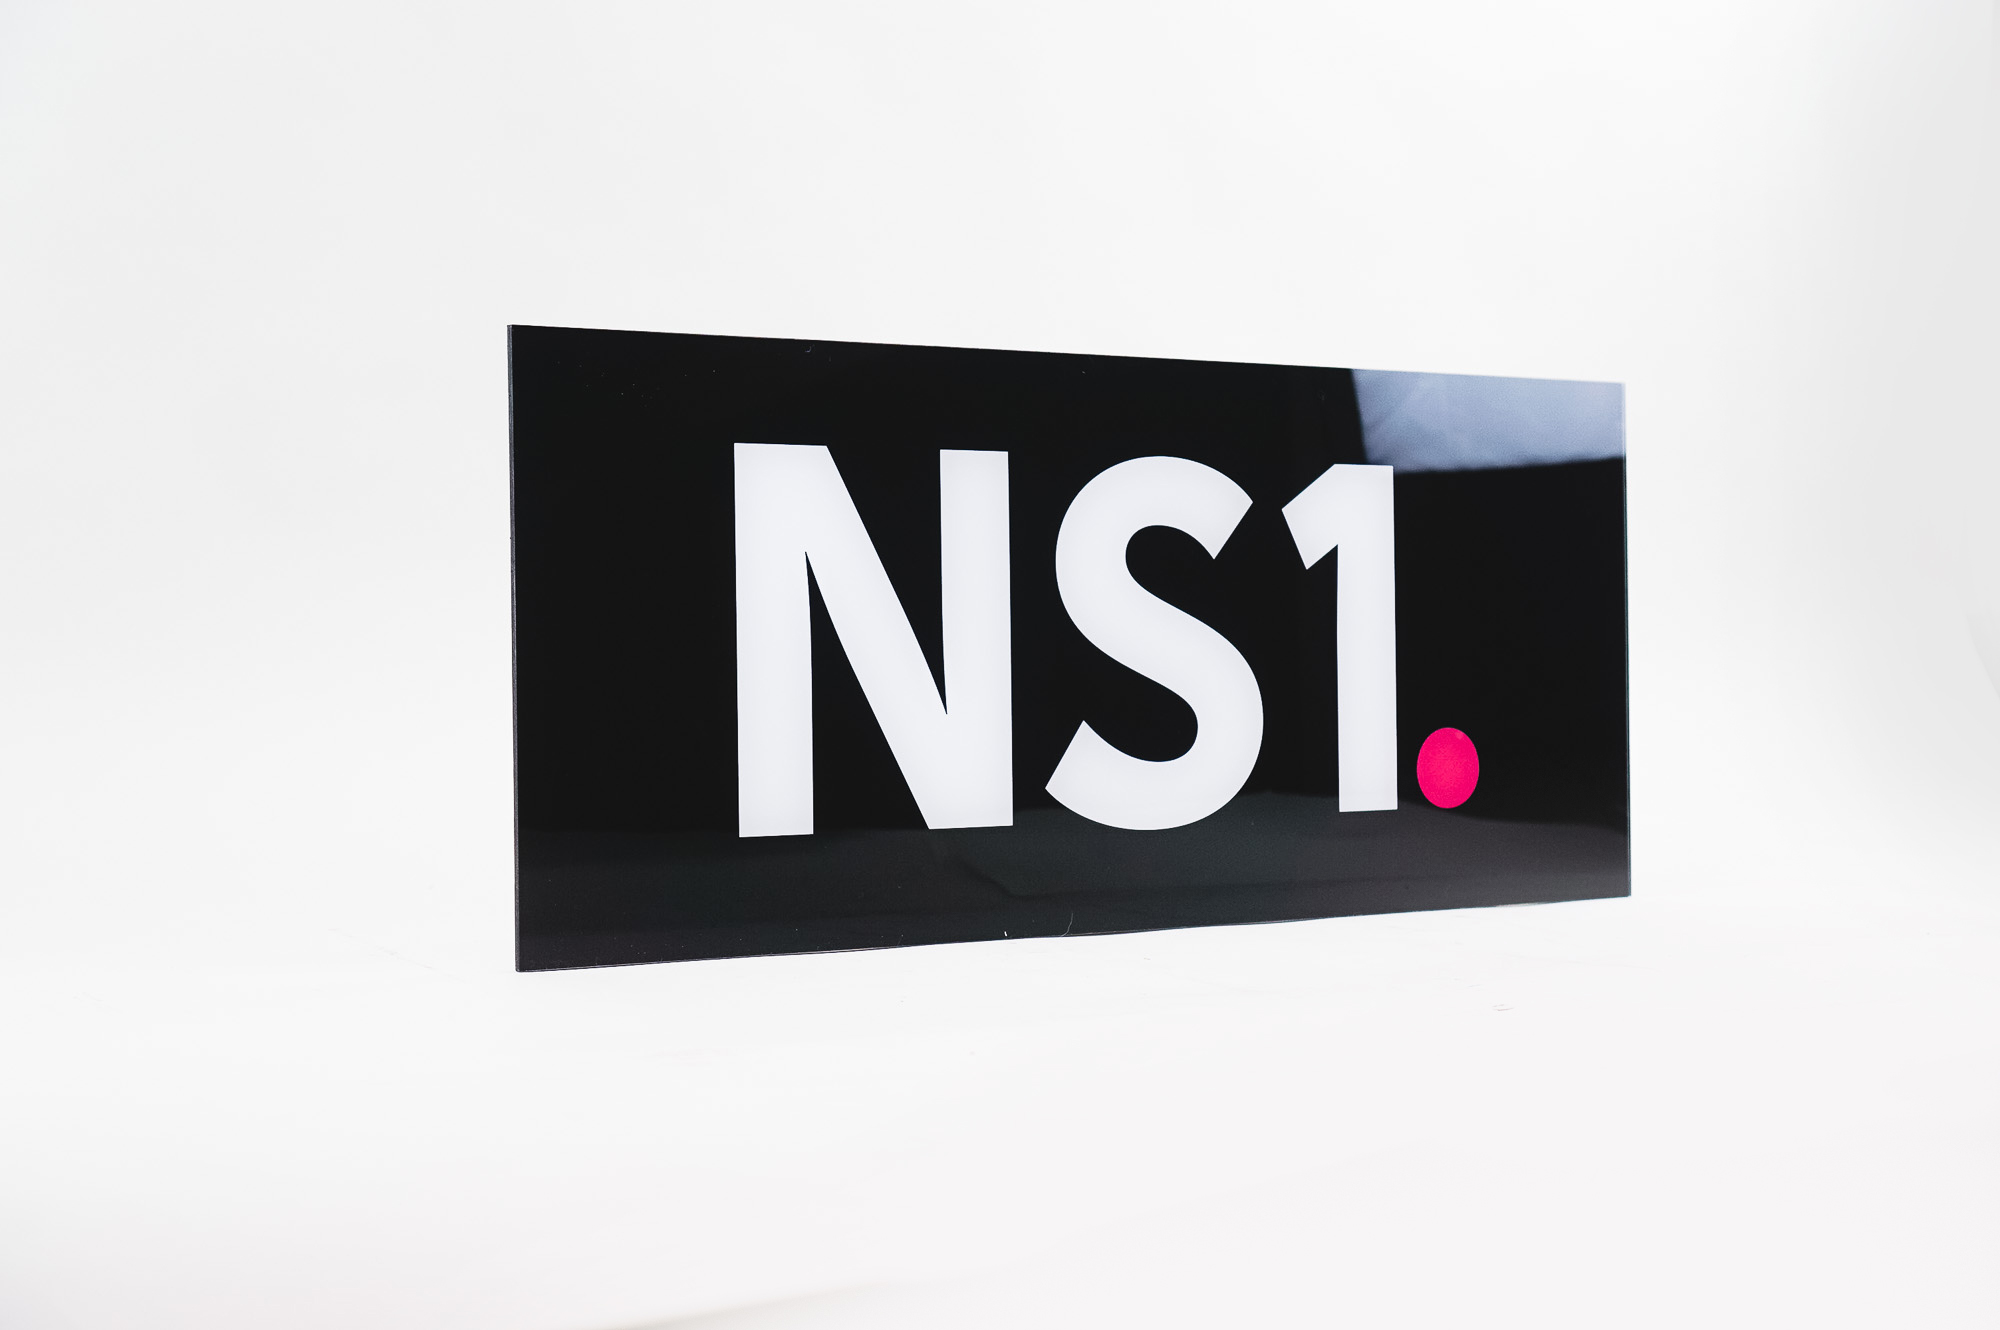 Glossy black, back-painted sign for NS1, a San Francisco based company that manages DNS and traffic technologies.